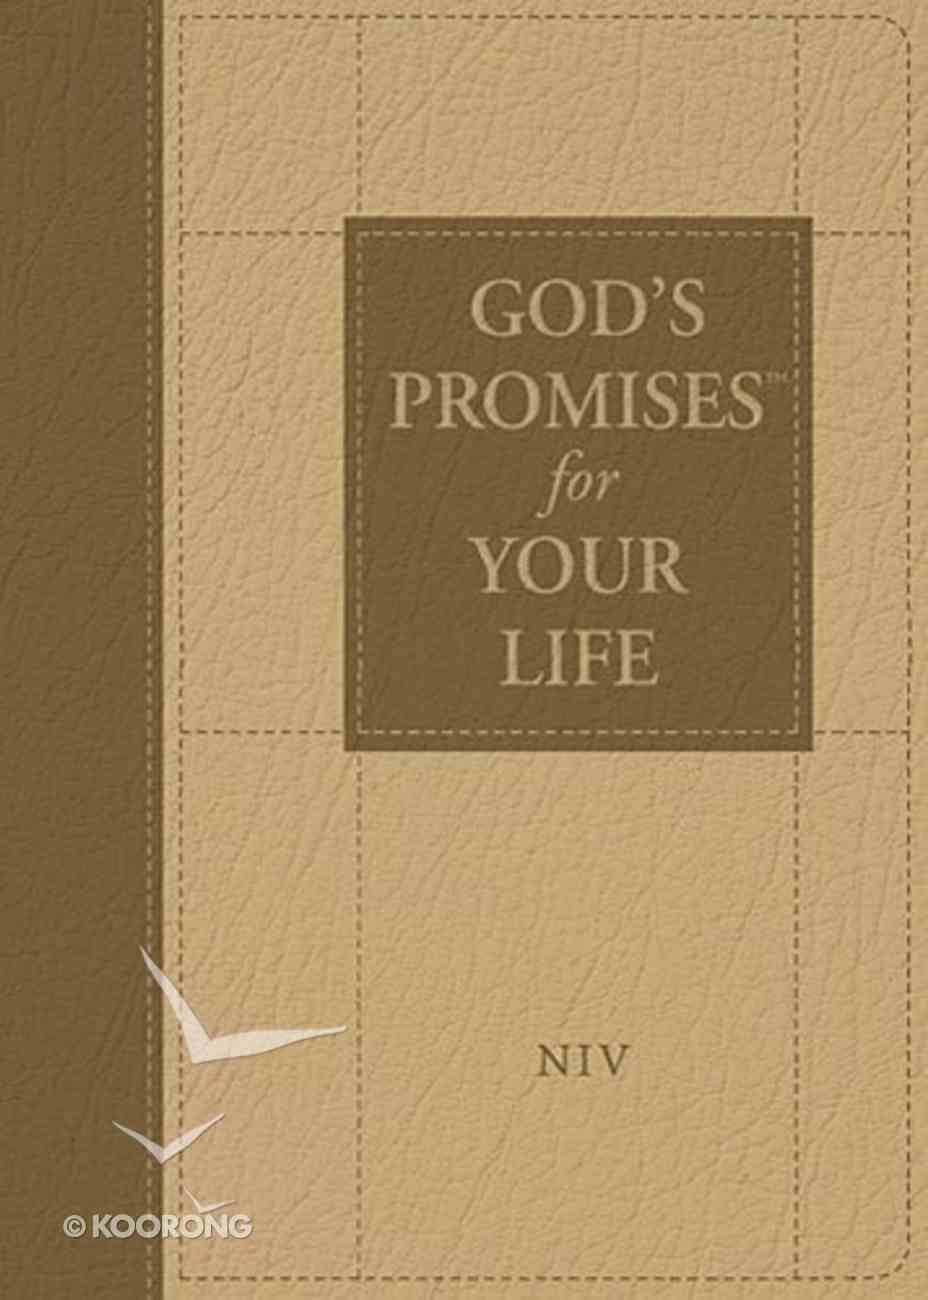 God's Promises For Your Life (Niv) Imitation Leather